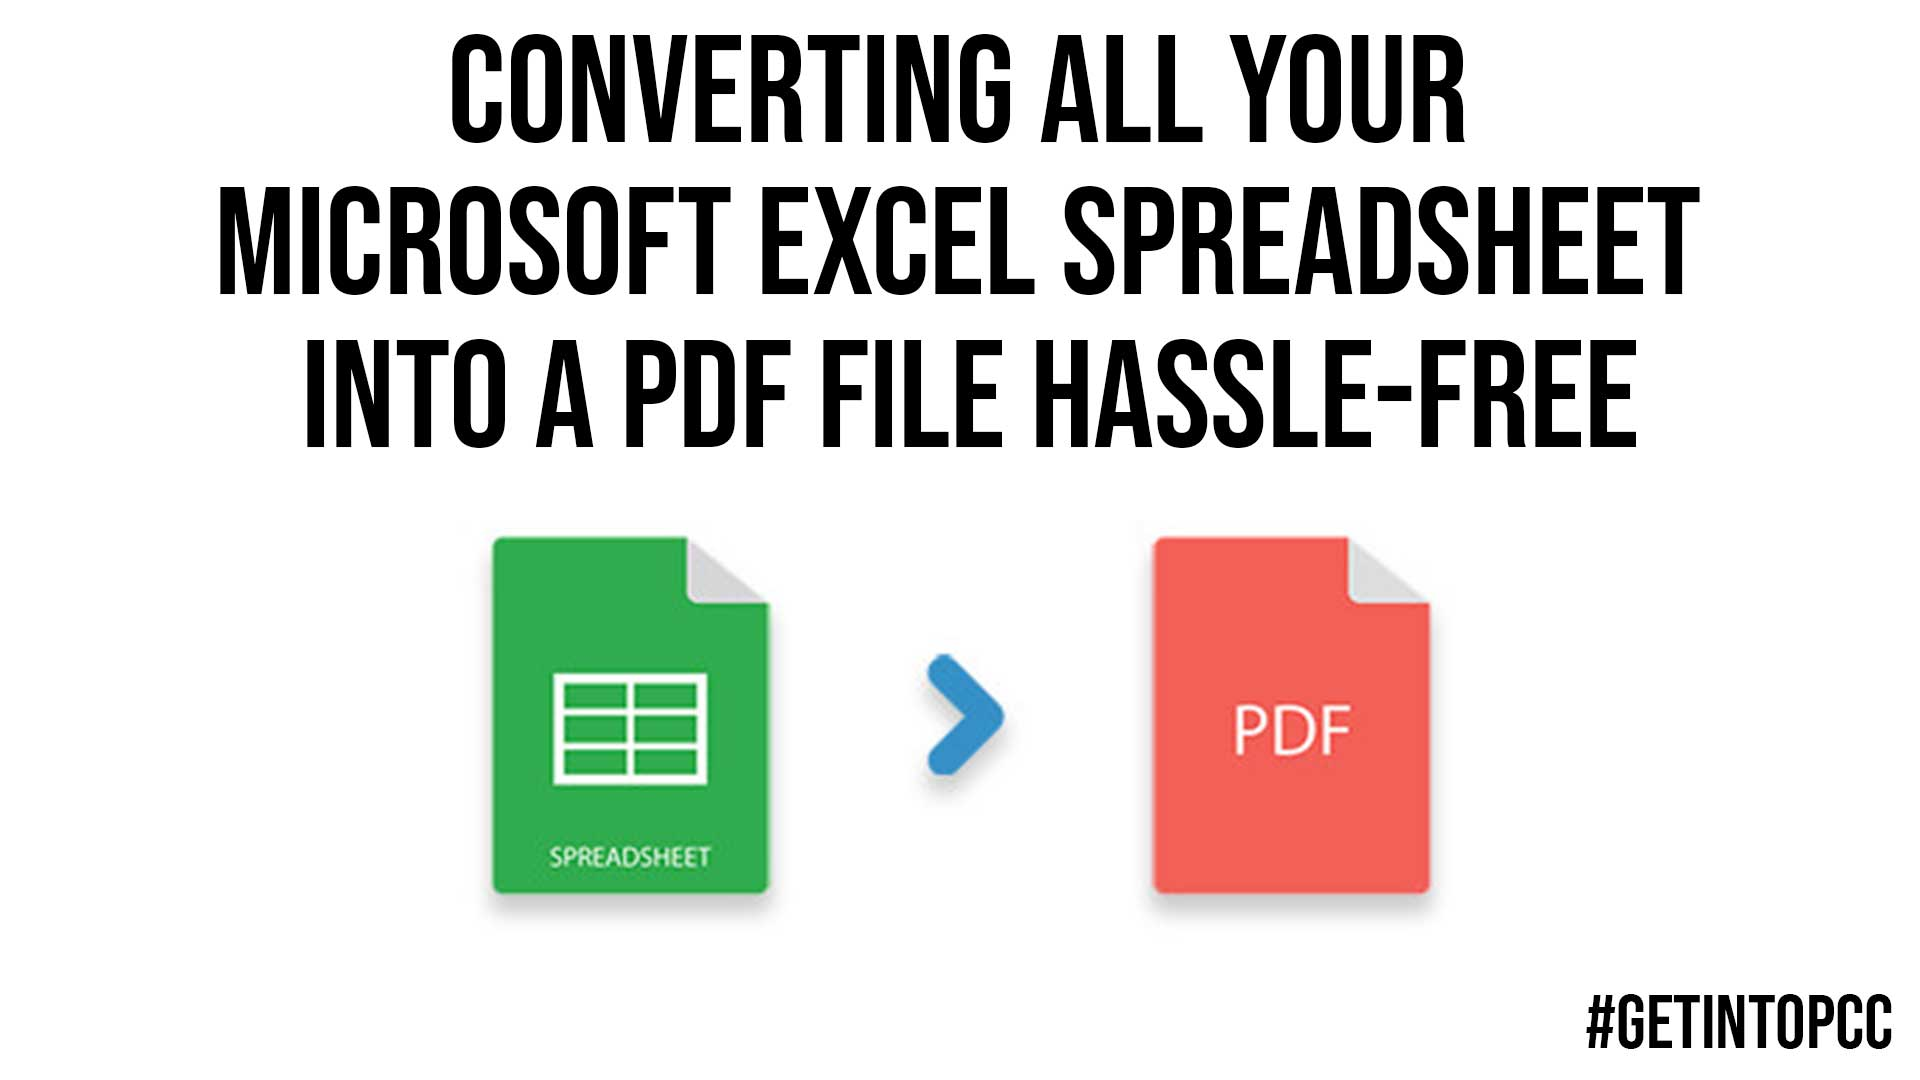 Converting All Your Microsoft Excel Spreadsheet Into A PDF File Hassle Free